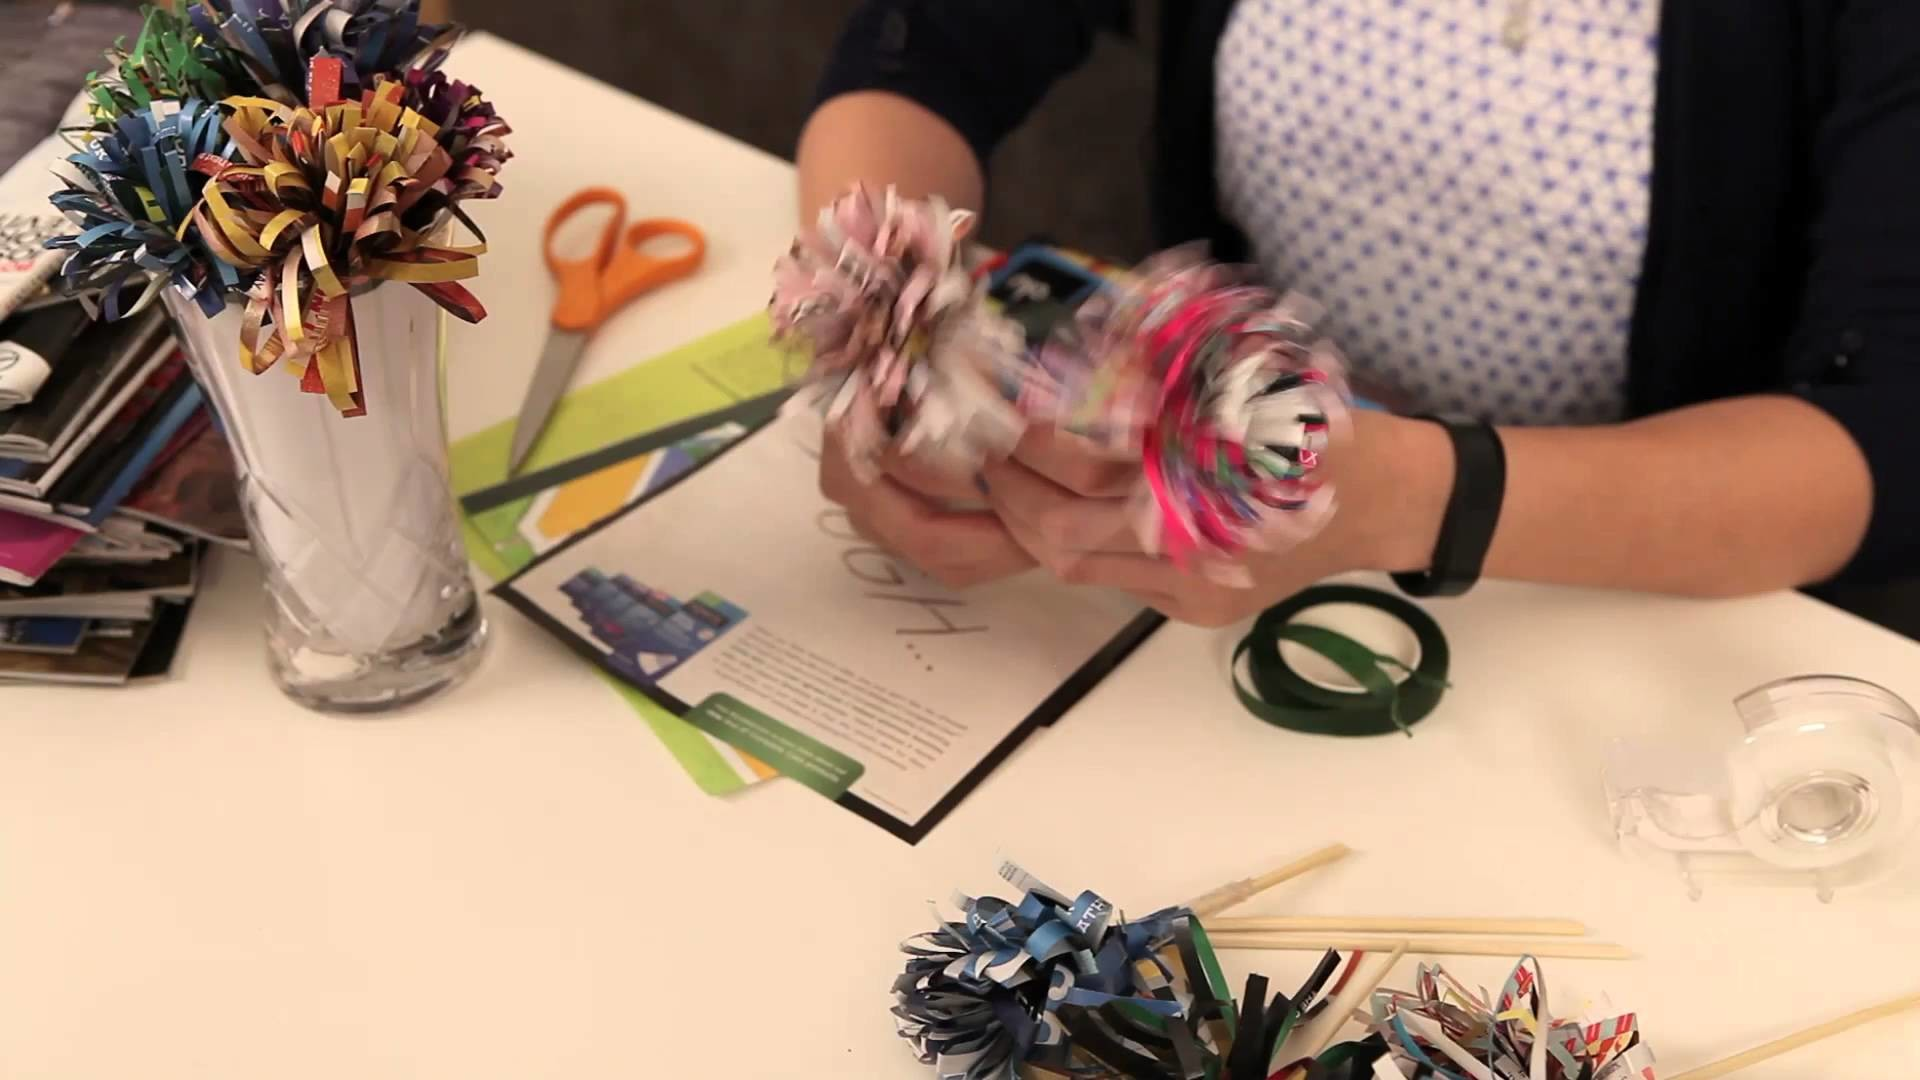 How to make Magazine Flowers. IS IT AS EASY AS IT LOOKS?